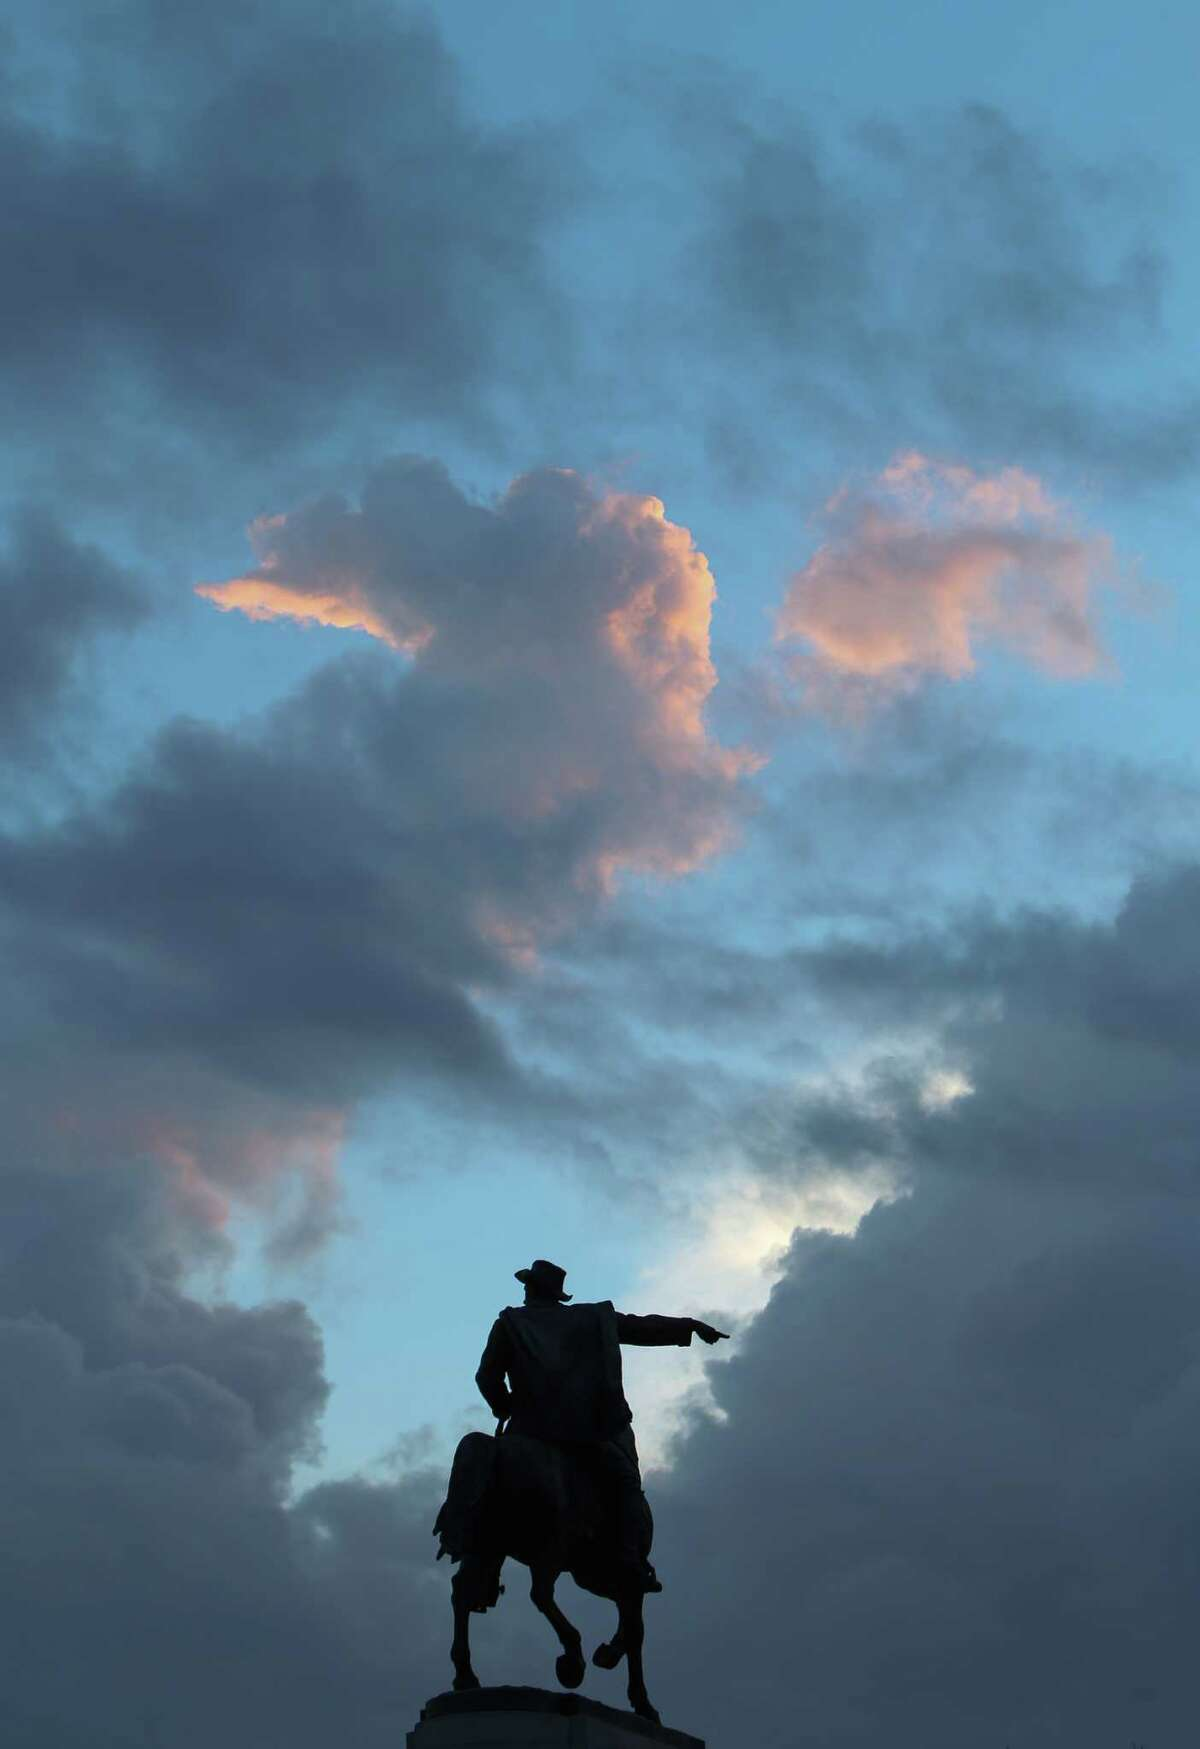 The Sam Houston statue in Hermann Park has become a symbol of the city since it was installed in 1925. ( Steve Gonzales / Houston Chronicle )